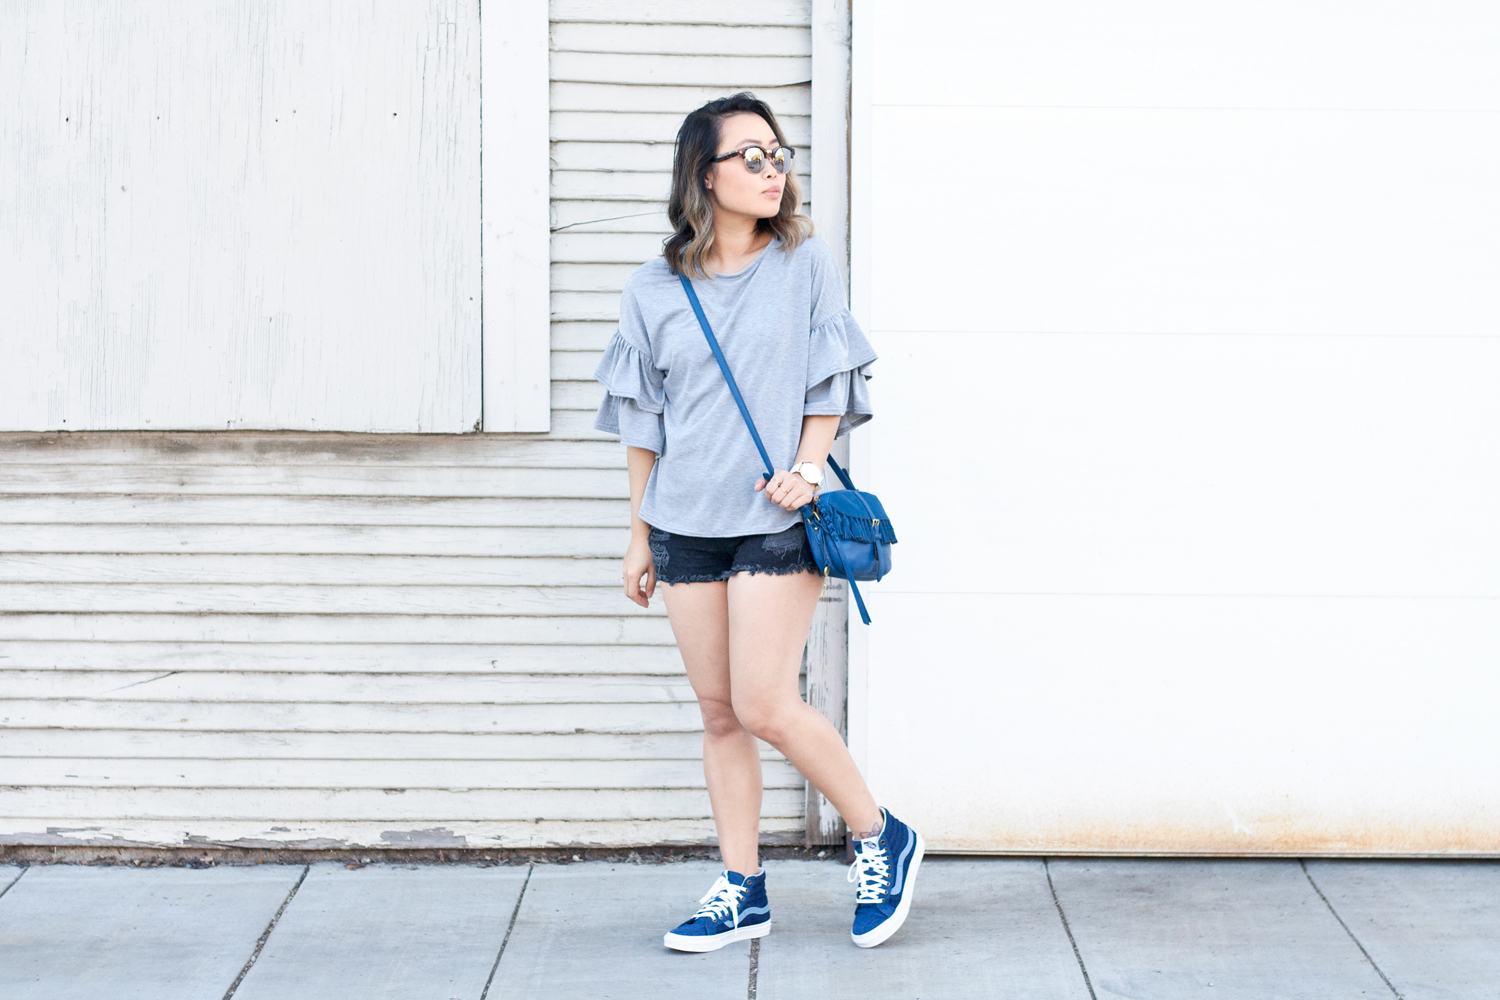 02fossil-blue-madewell-vans-denim-sf-fashion-style